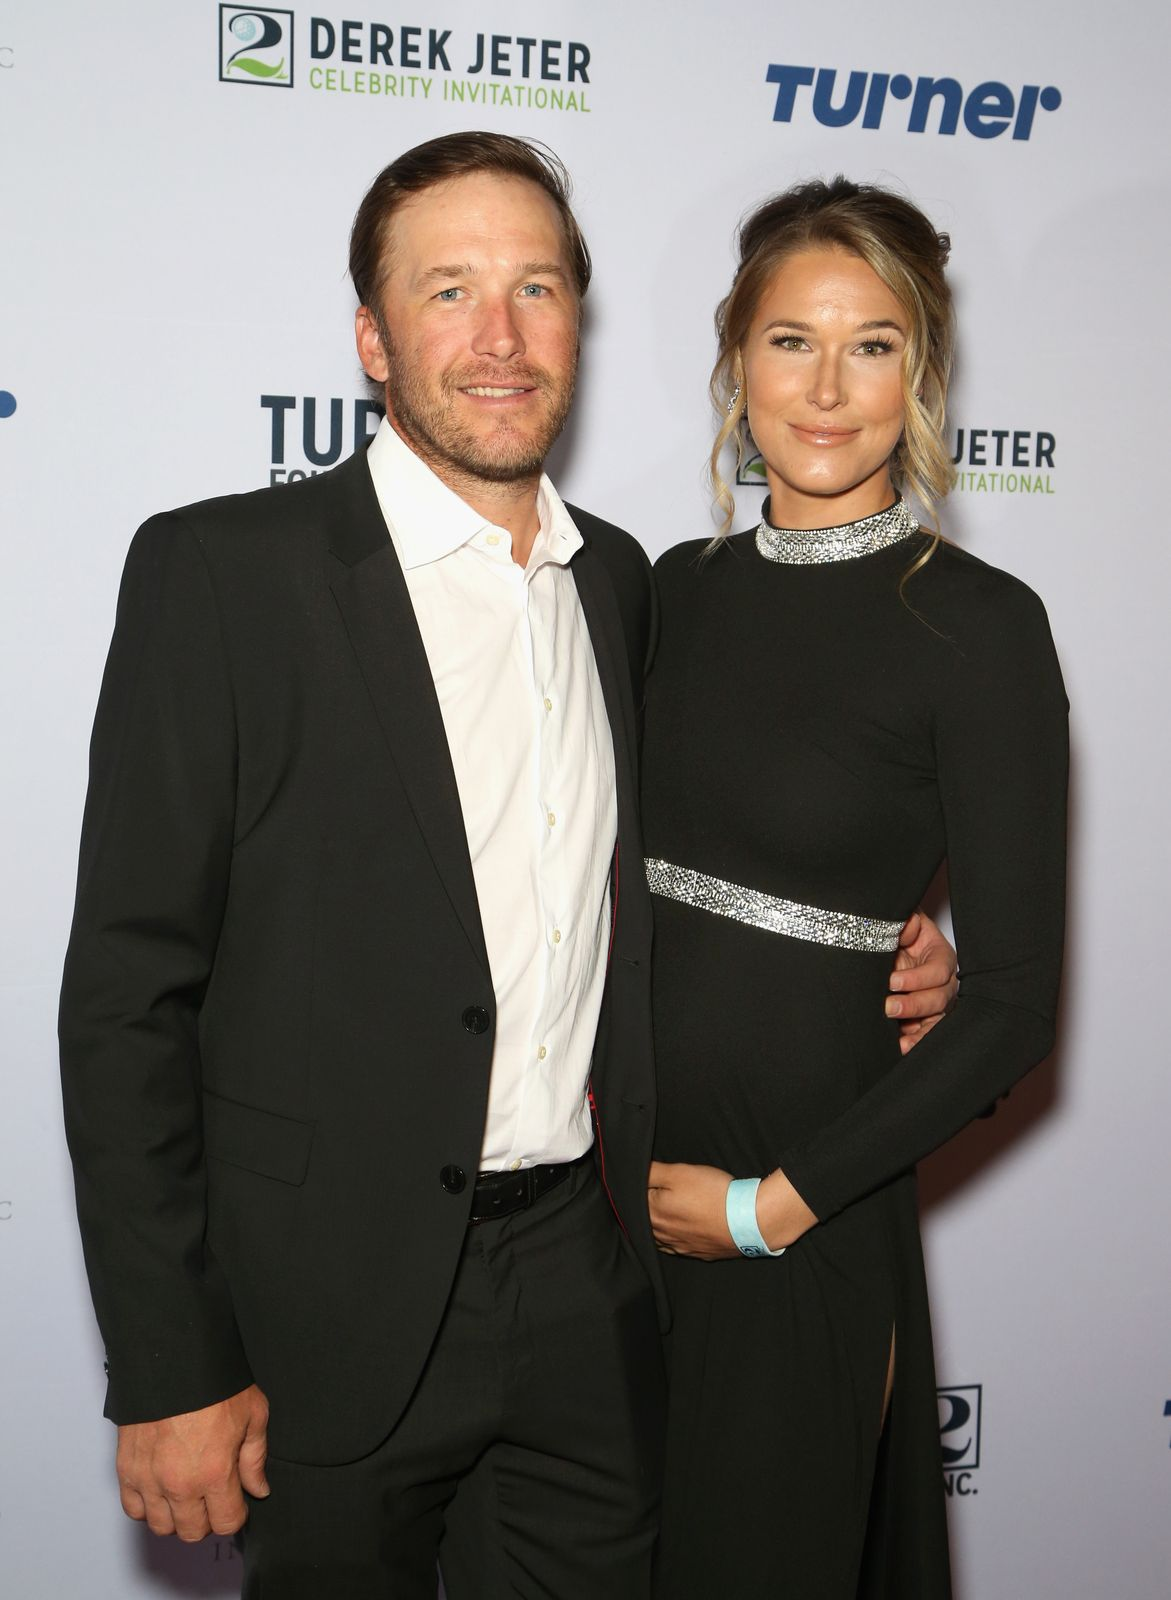 Bode Miller and his wife Morgan Beck, attend the 2018 Derek Jeter Celebrity Invitational gala at the Aria Resort & Casino on April 19, 2018 in Las Vegas, Nevada. | Photo: Getty Images.